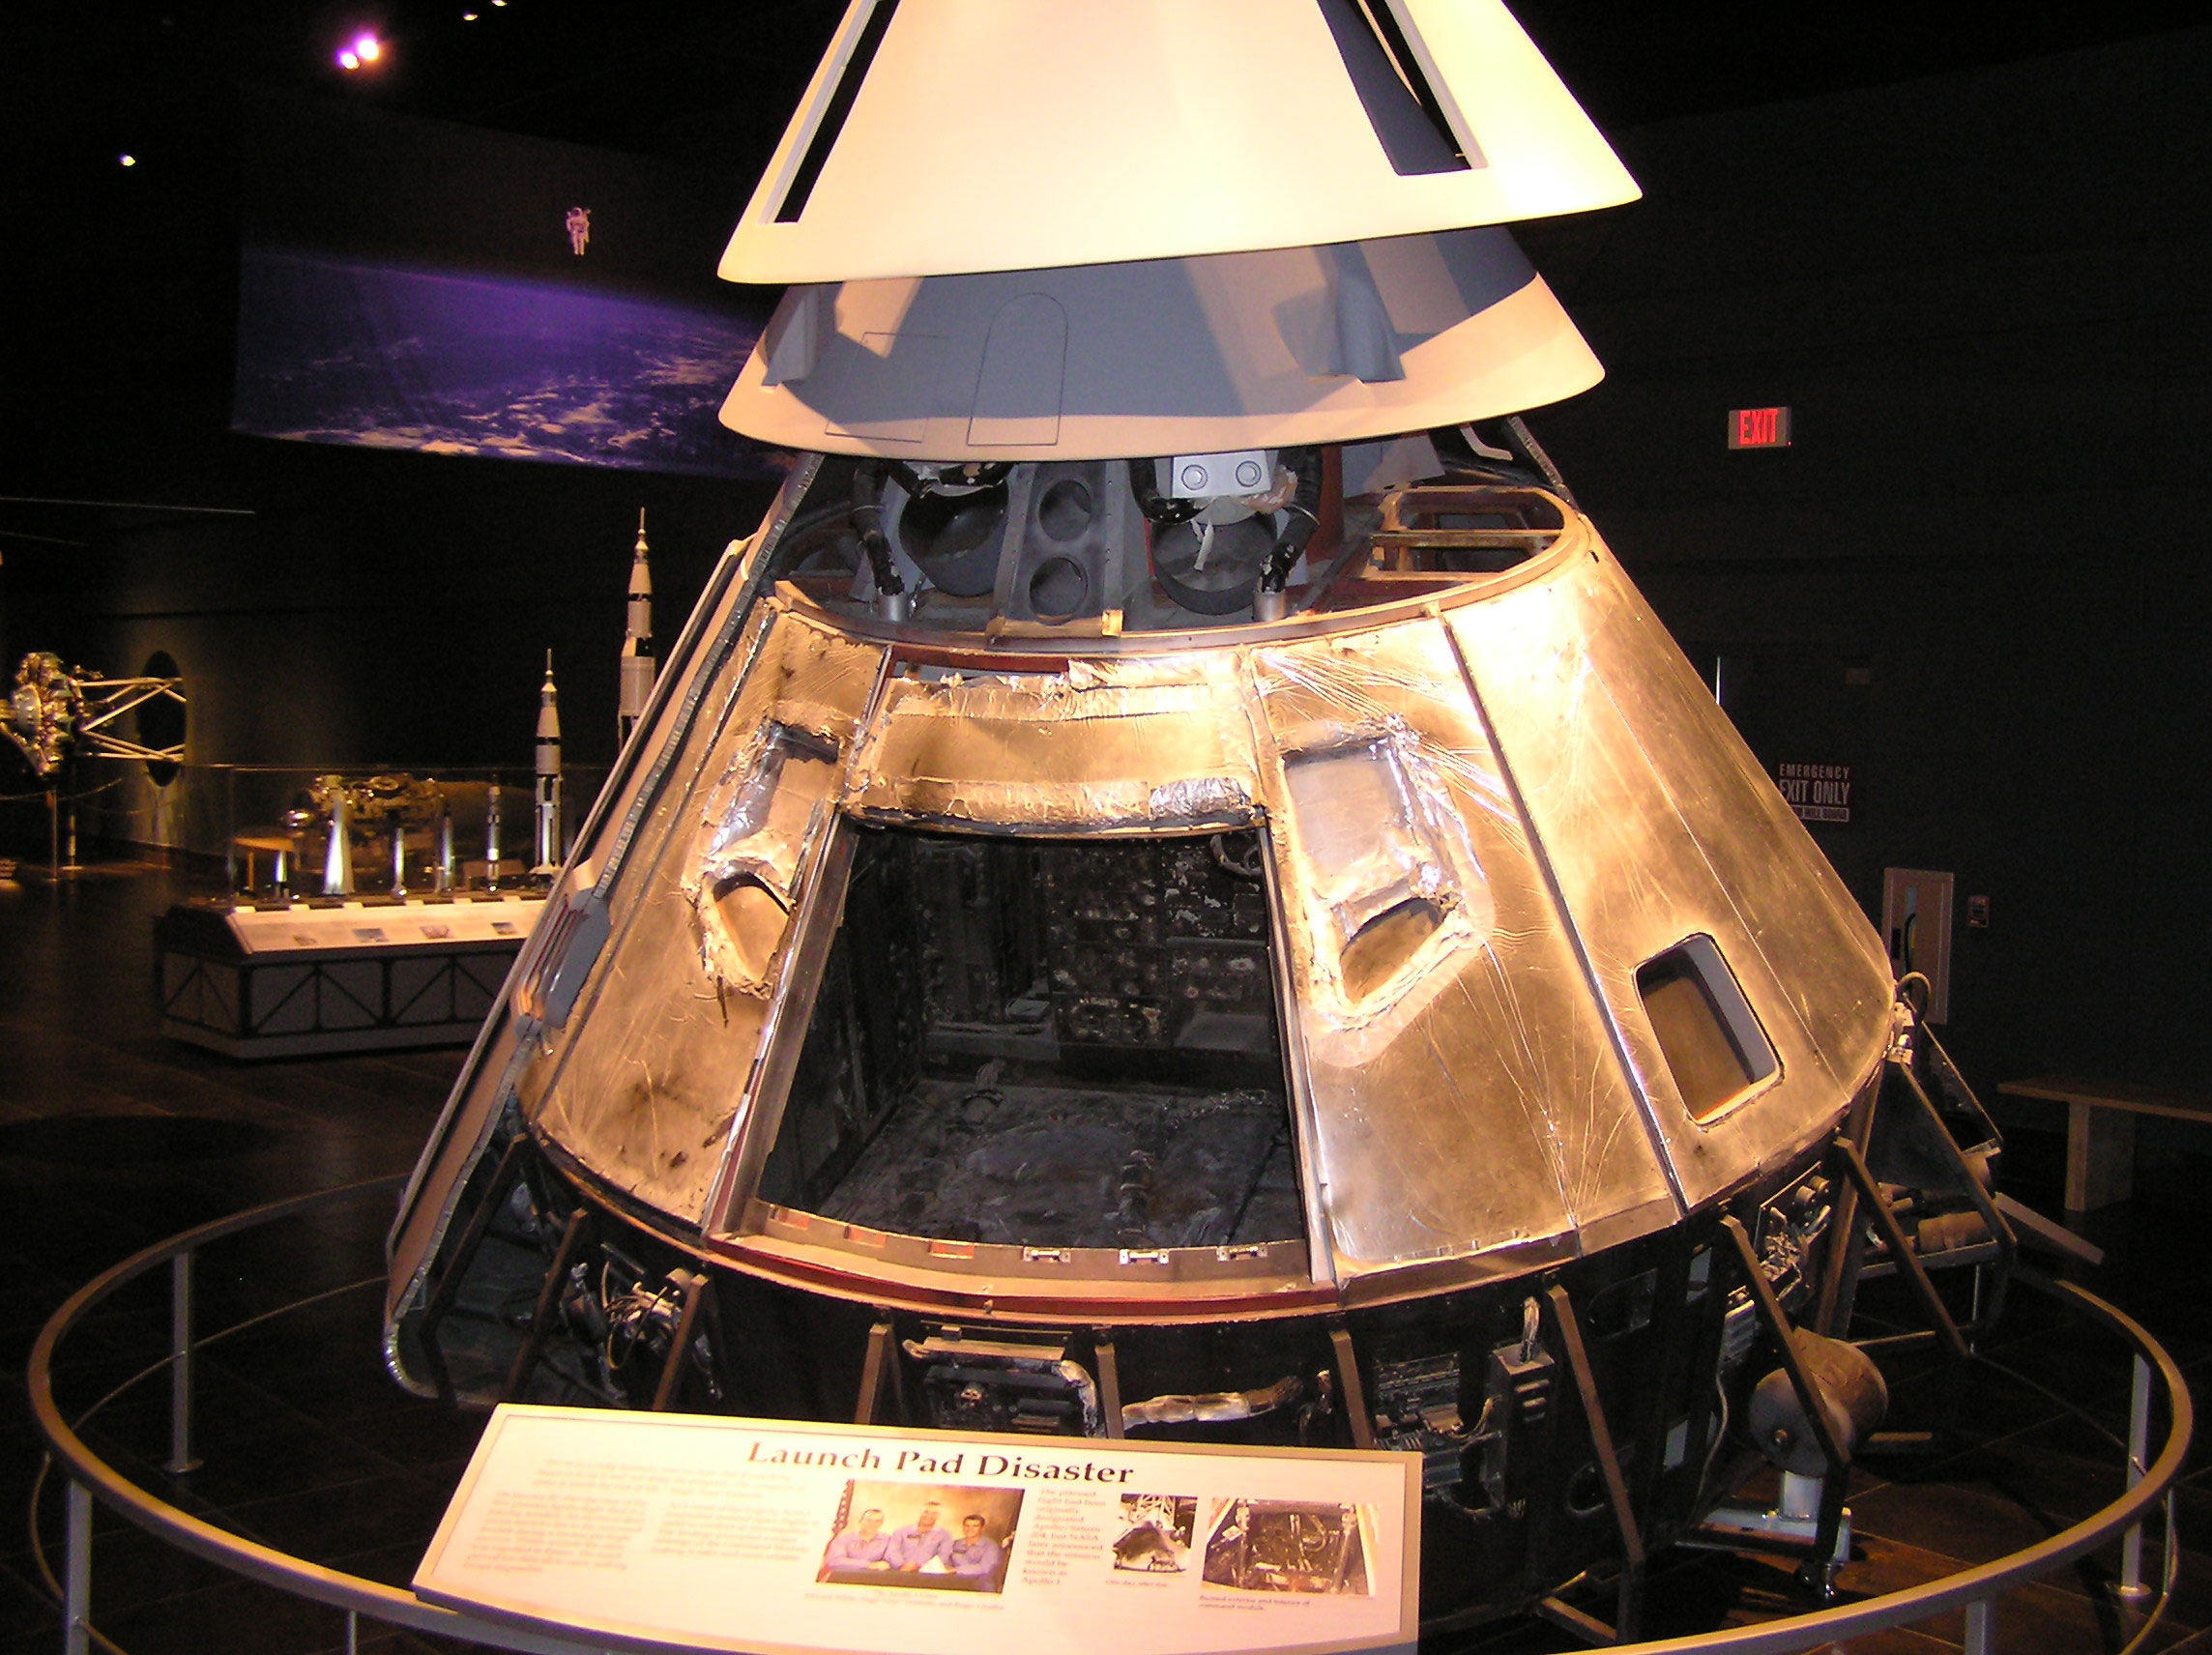 Apollo1display